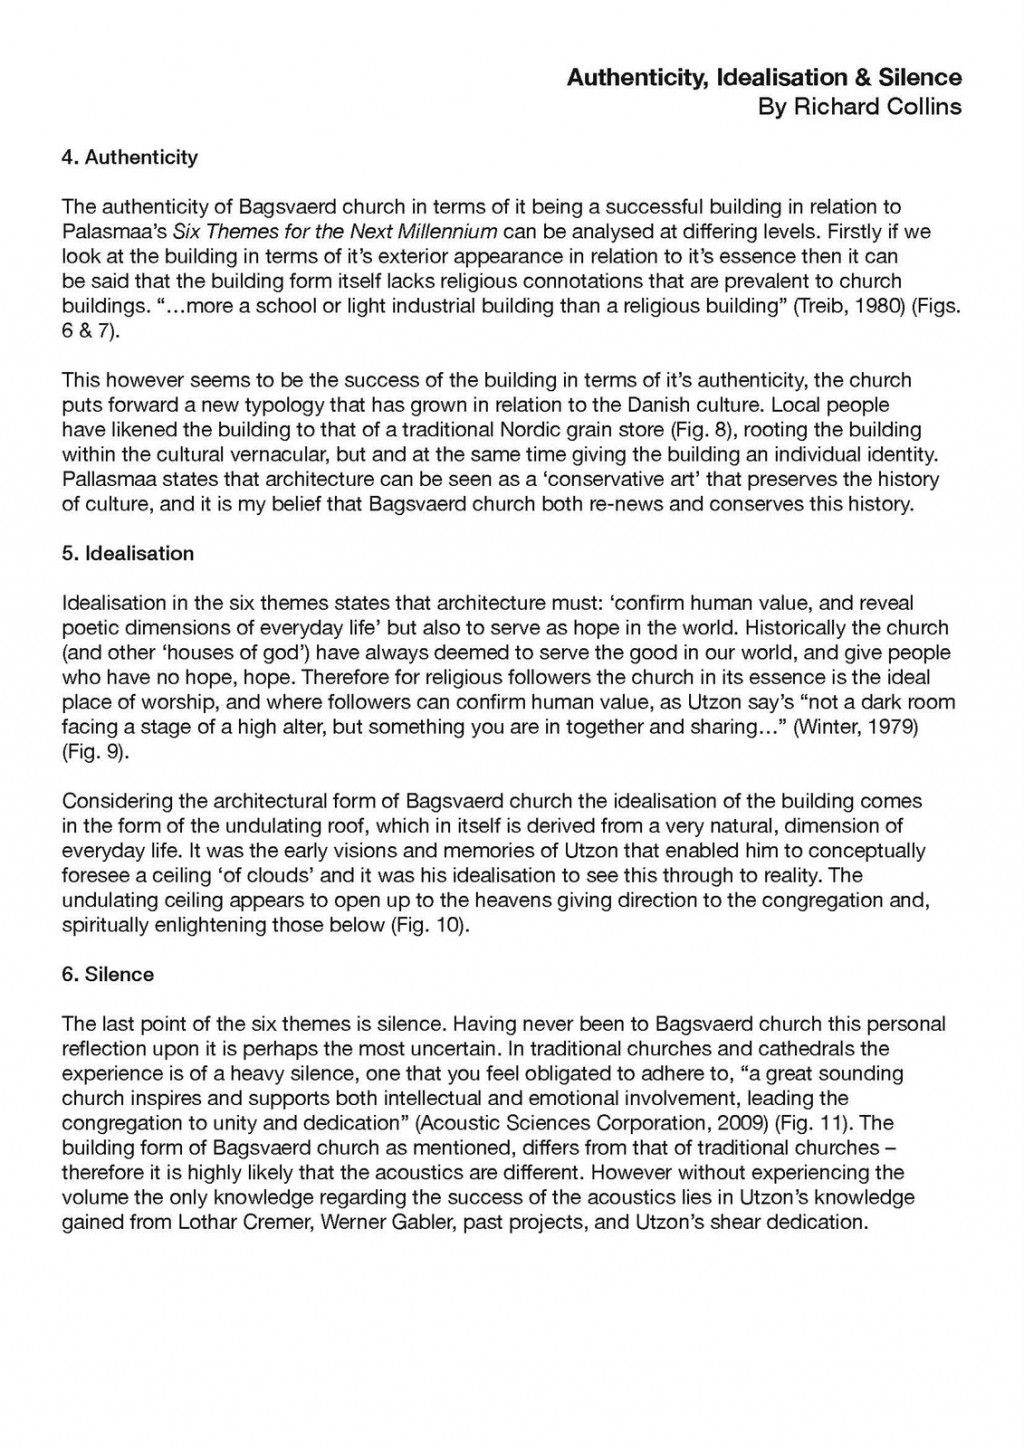 005 Group20illustrative20essay20dragged206 Essay Example Exemplification Unusual Topics Good Unique Question Large